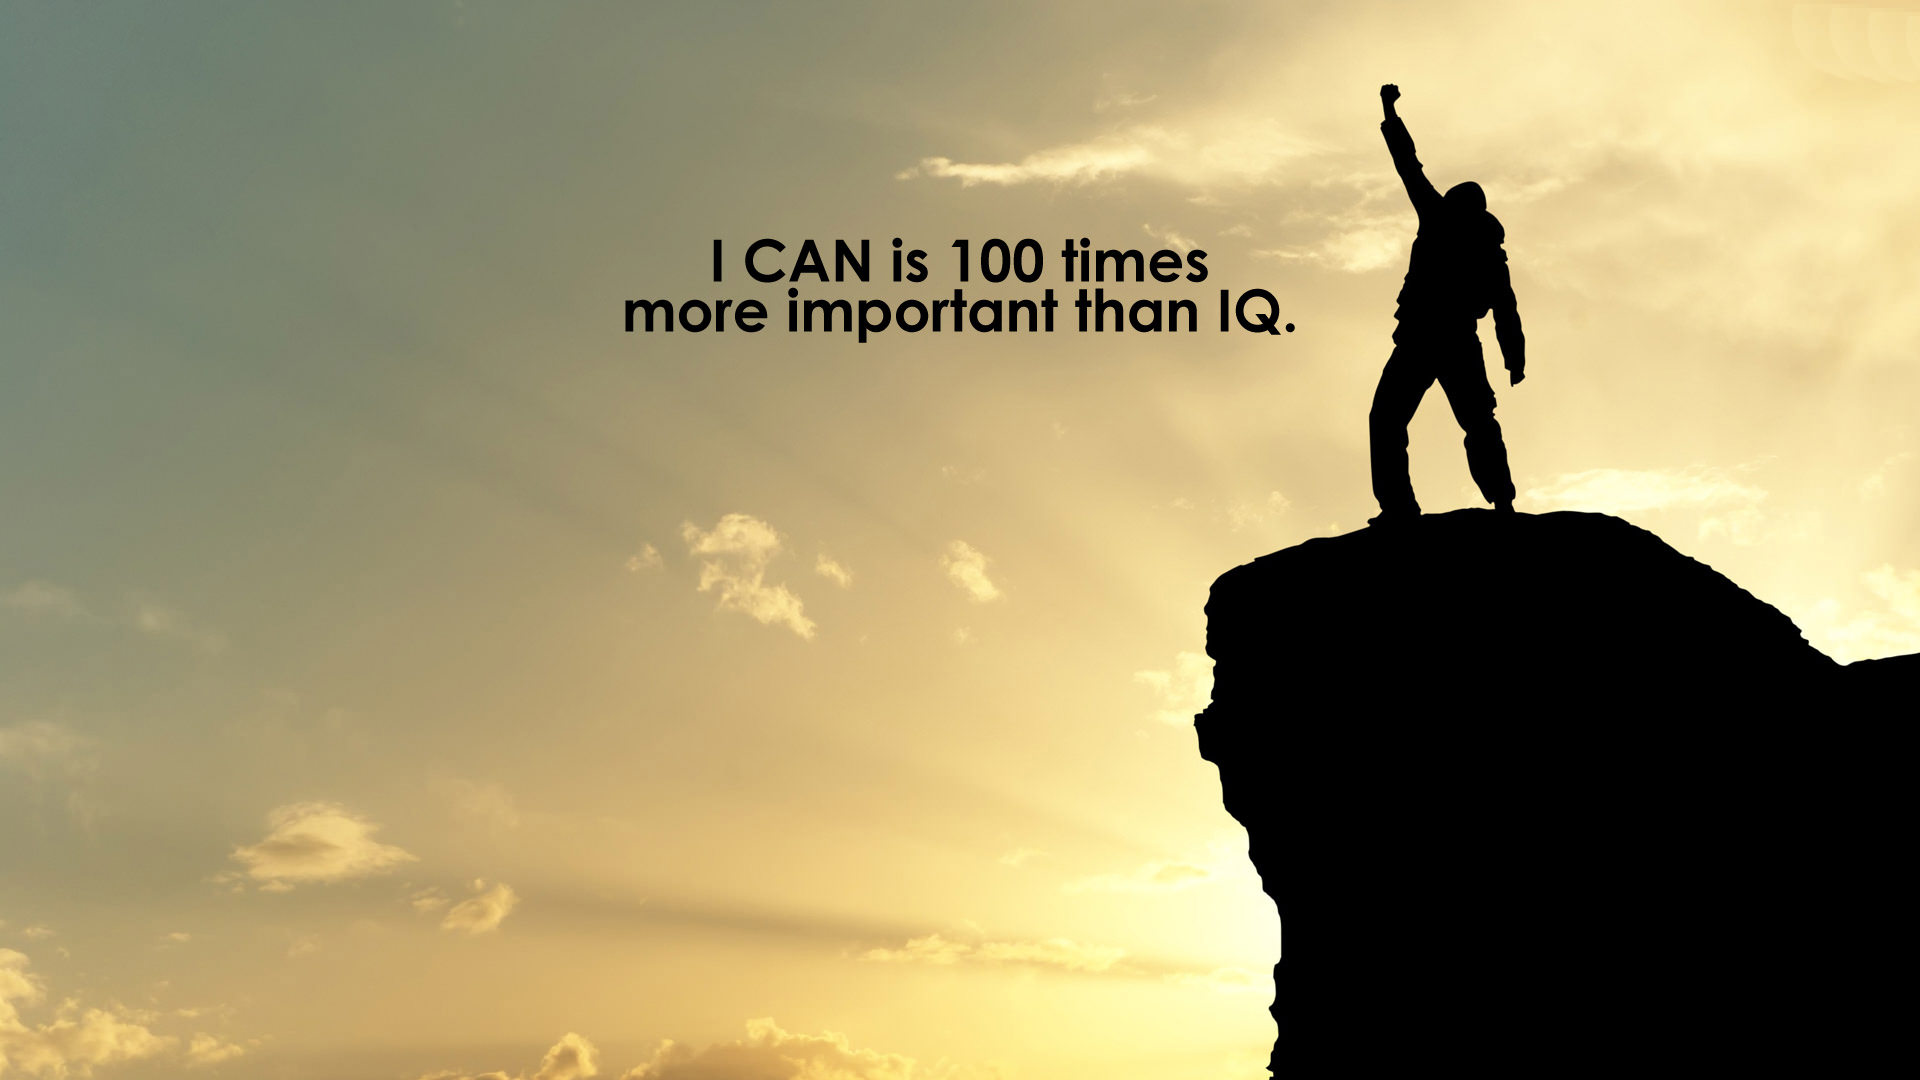 I can is 100 times more important than IQ 1920x1080